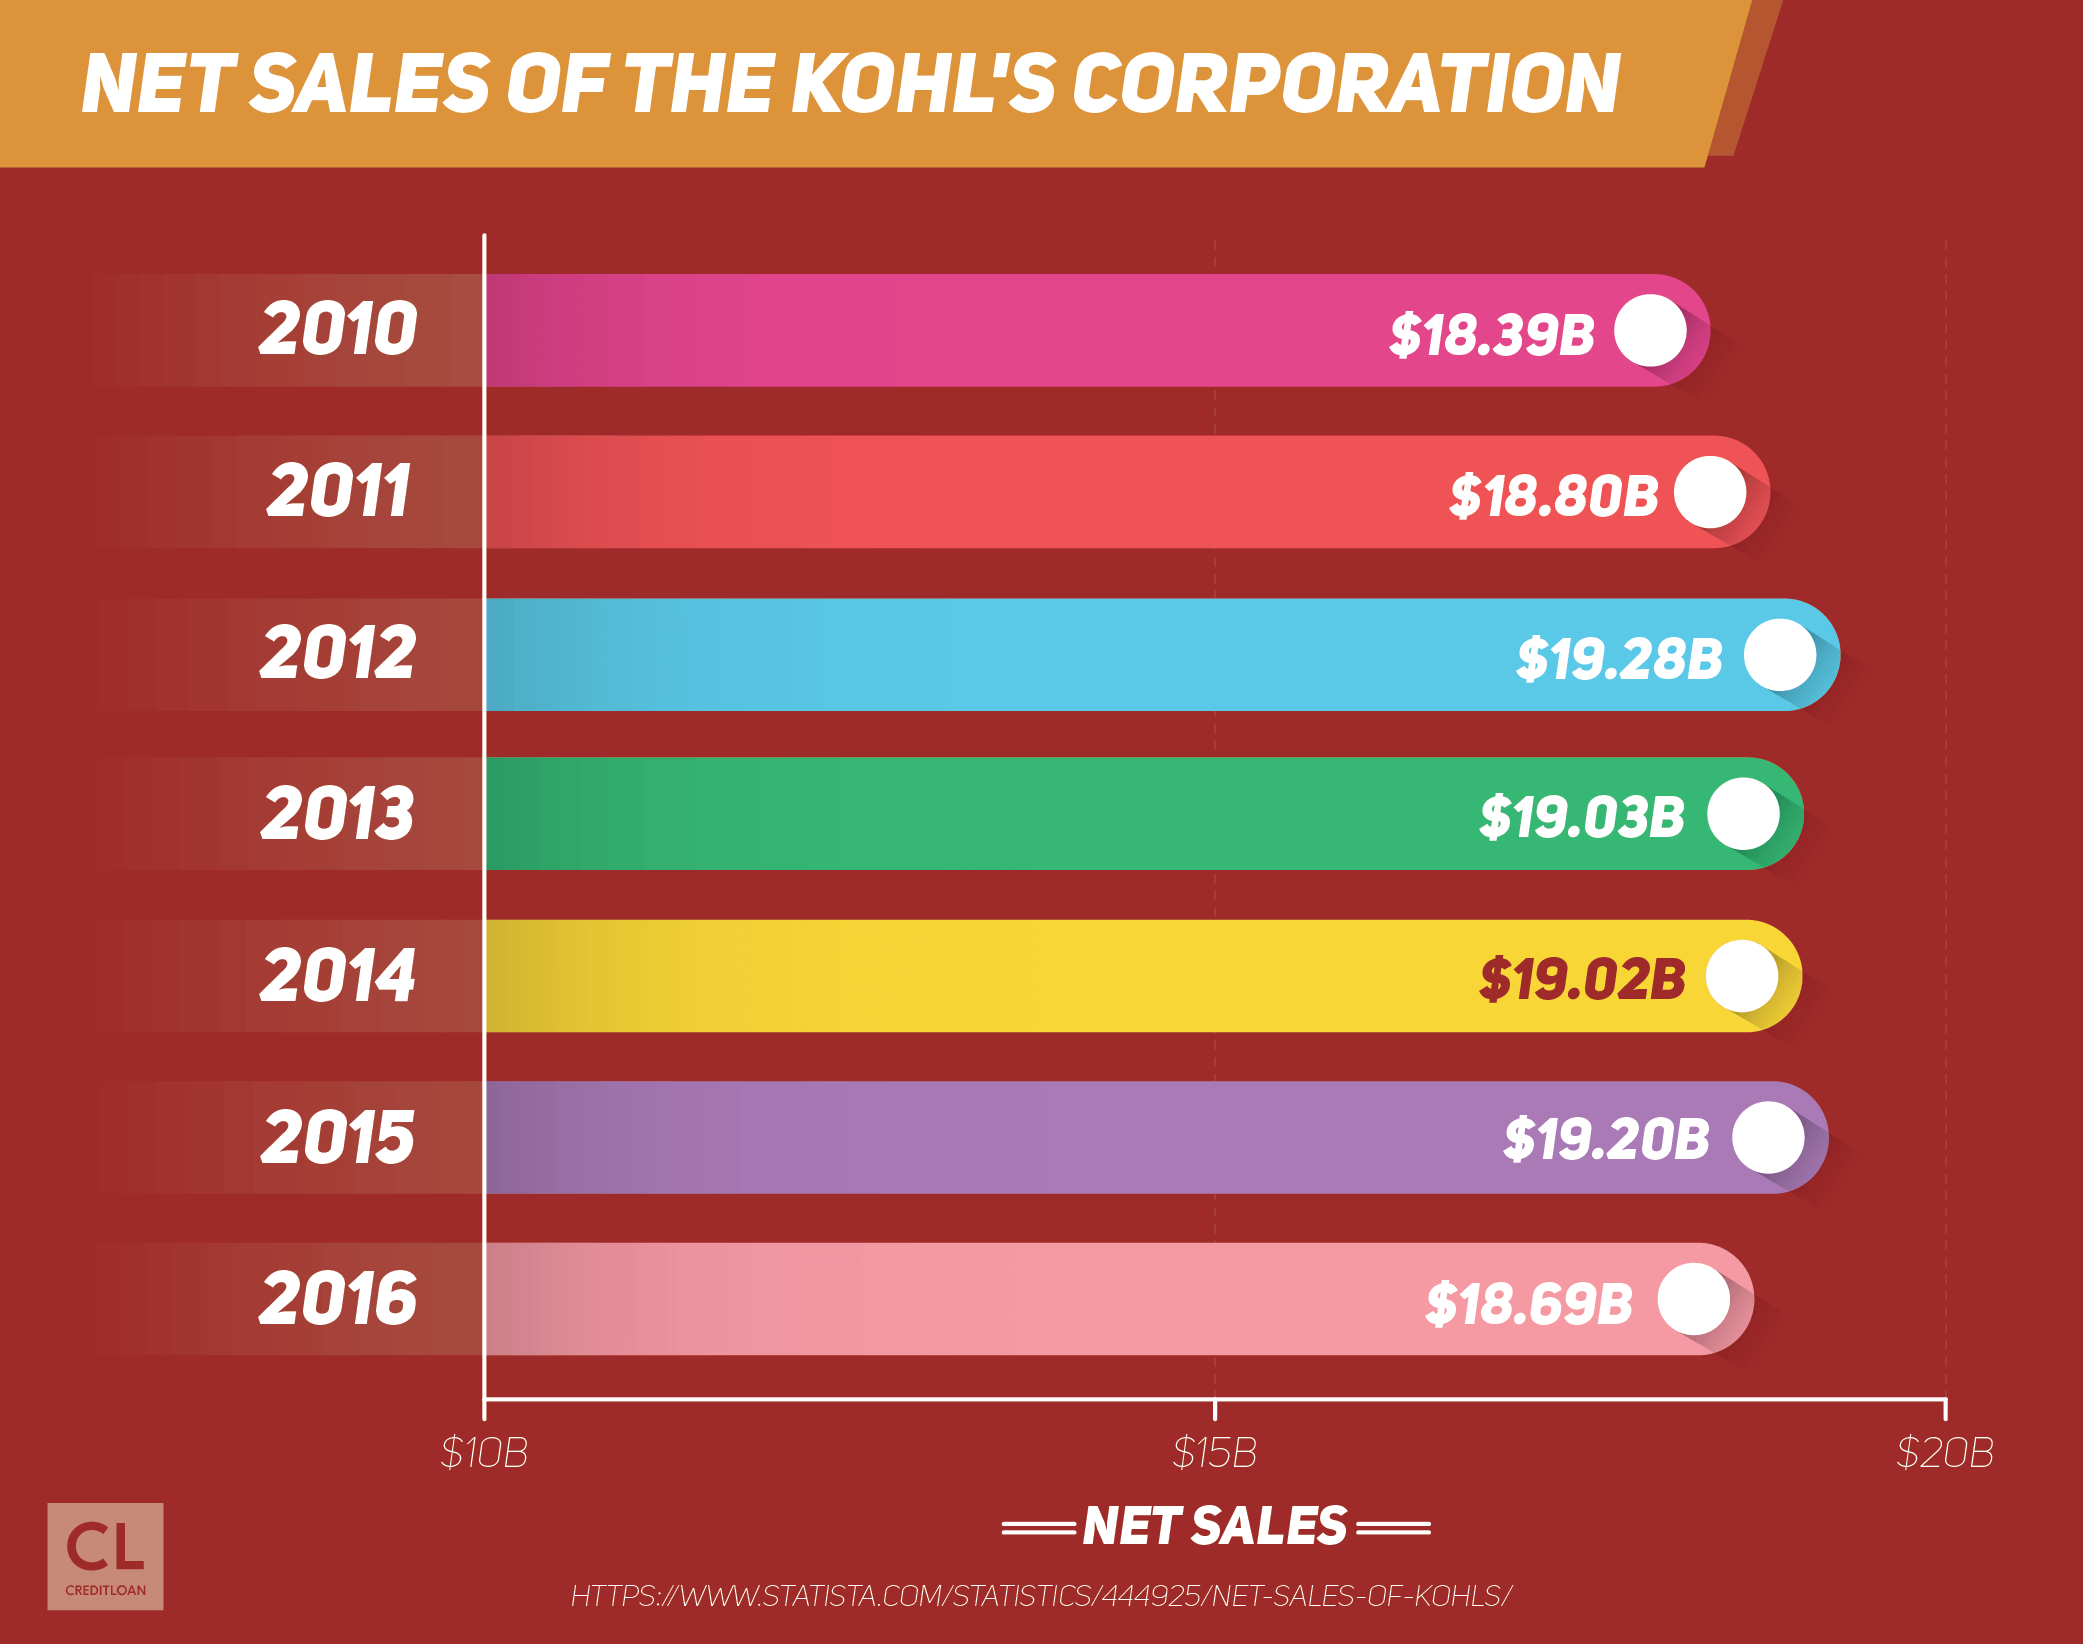 Net Sales of the Kohl's Corporation from 2010-2016